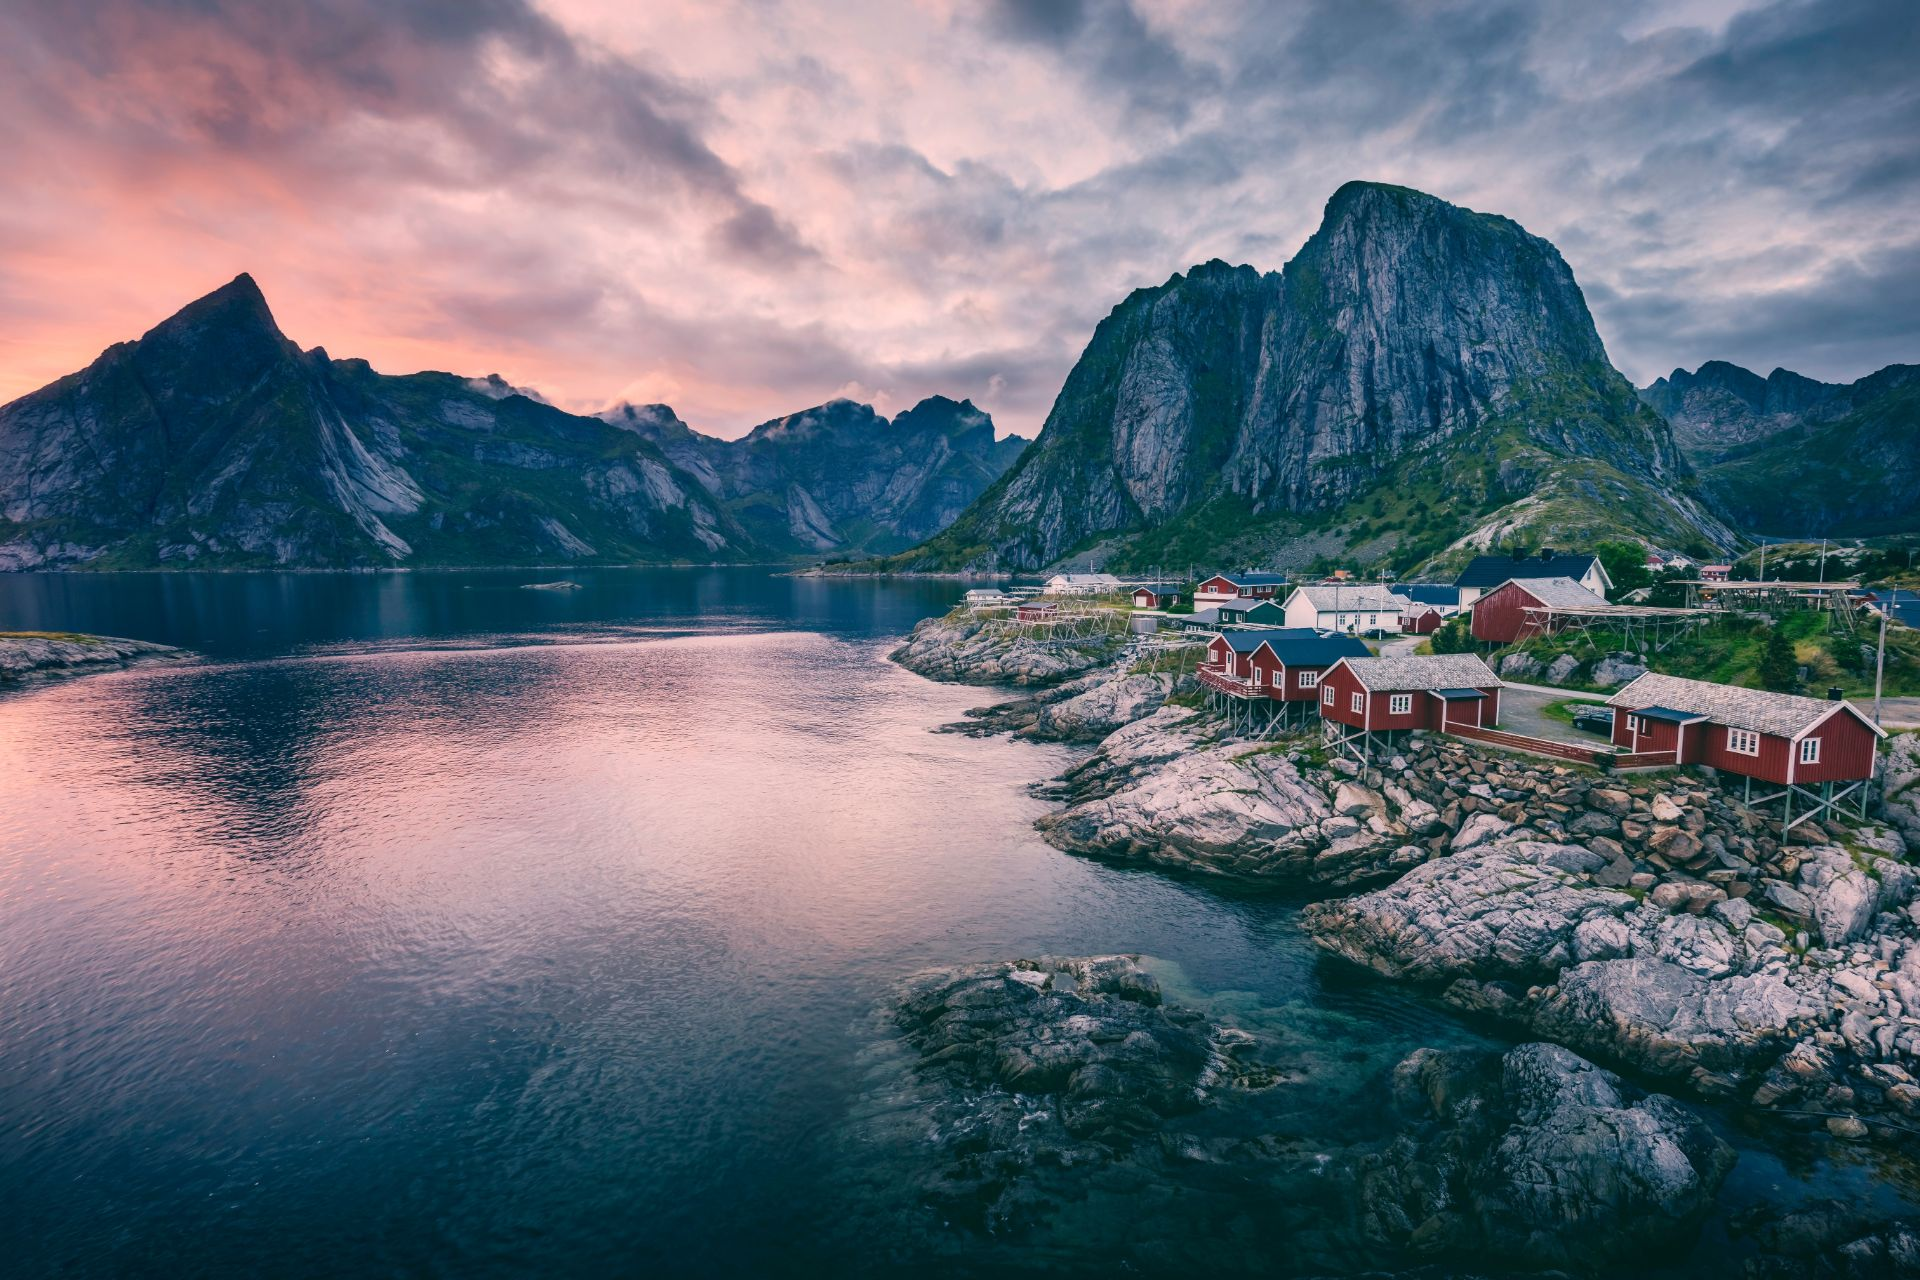 secluded-isolated-town-in-norway-by-a-beautiful-lake-and-mountains-sustainable-travel-tips